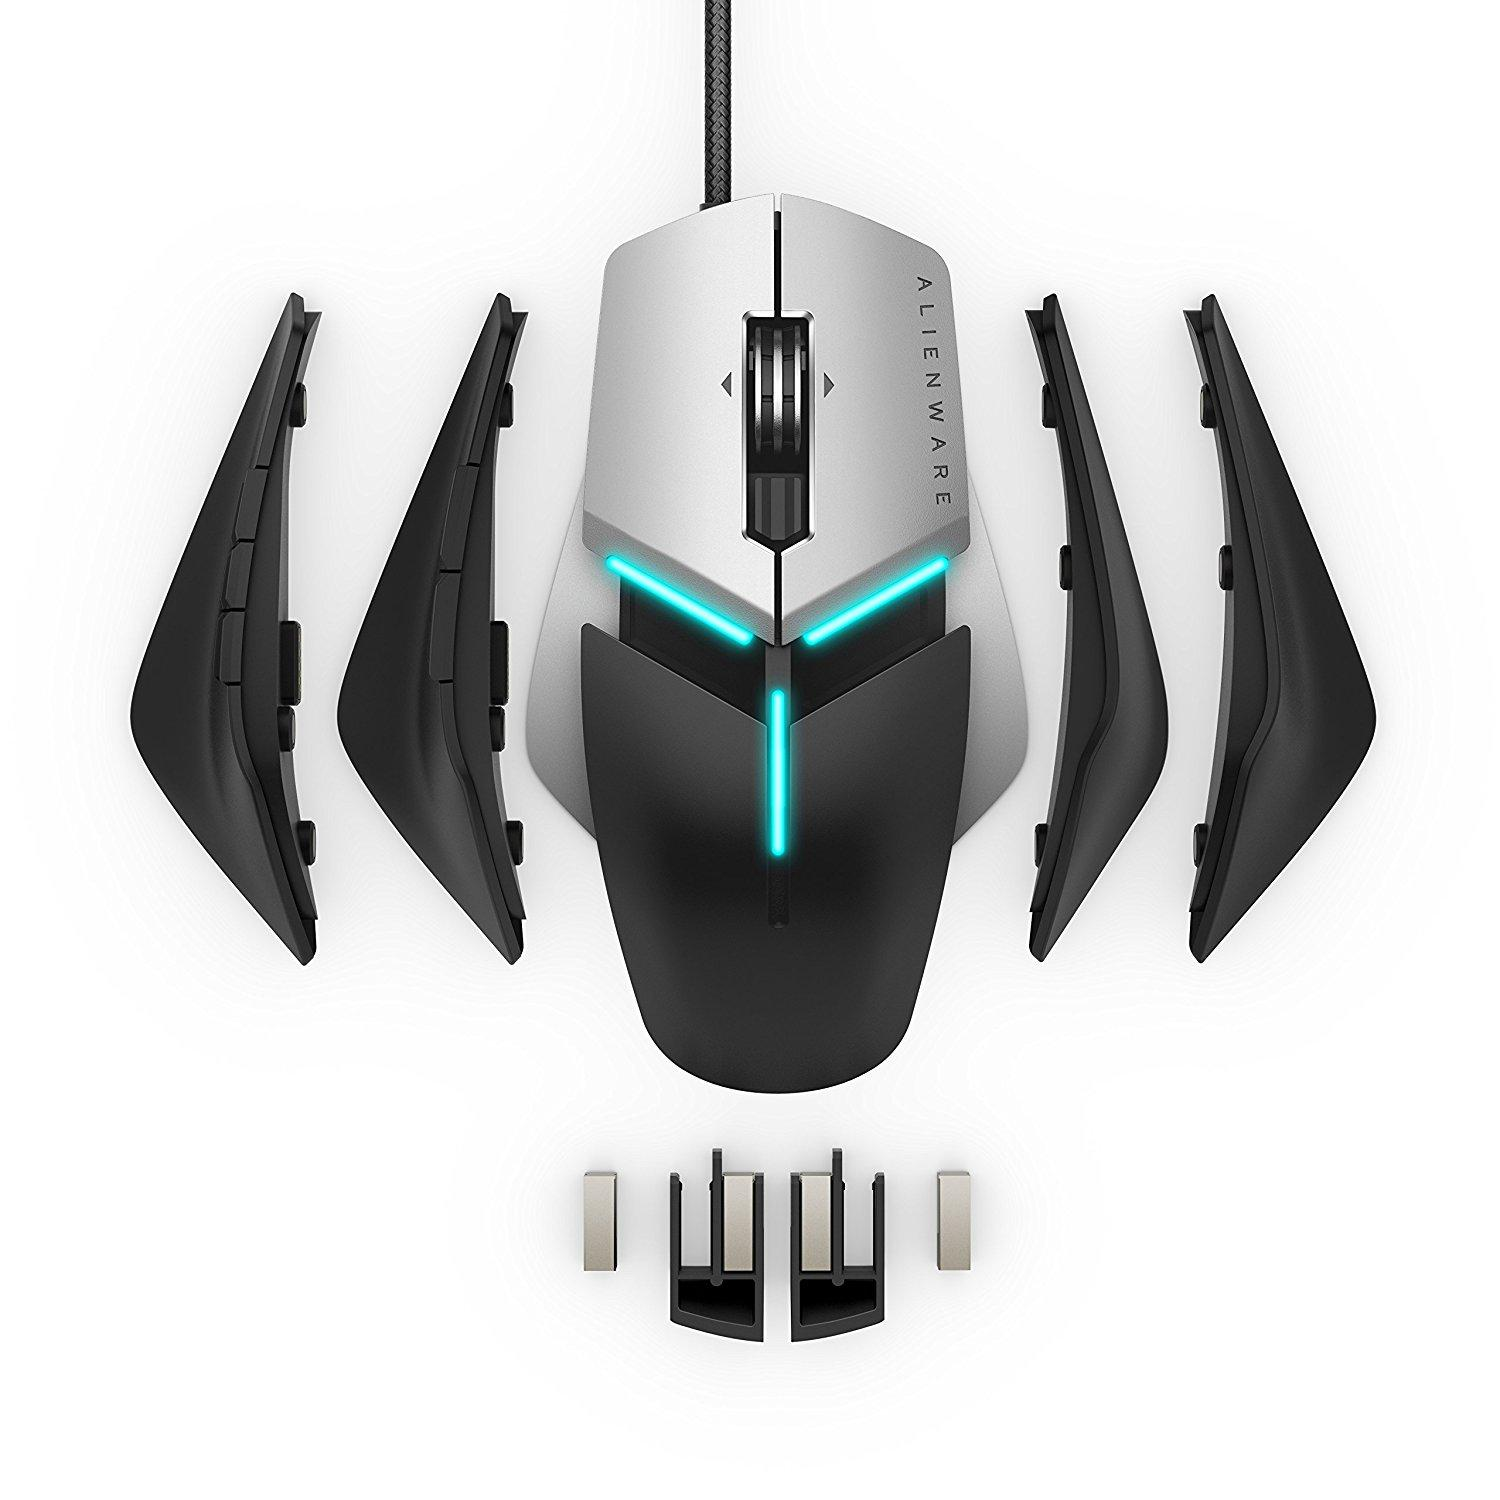 MOUSE GAMING Dell Alienware AW958 Elite